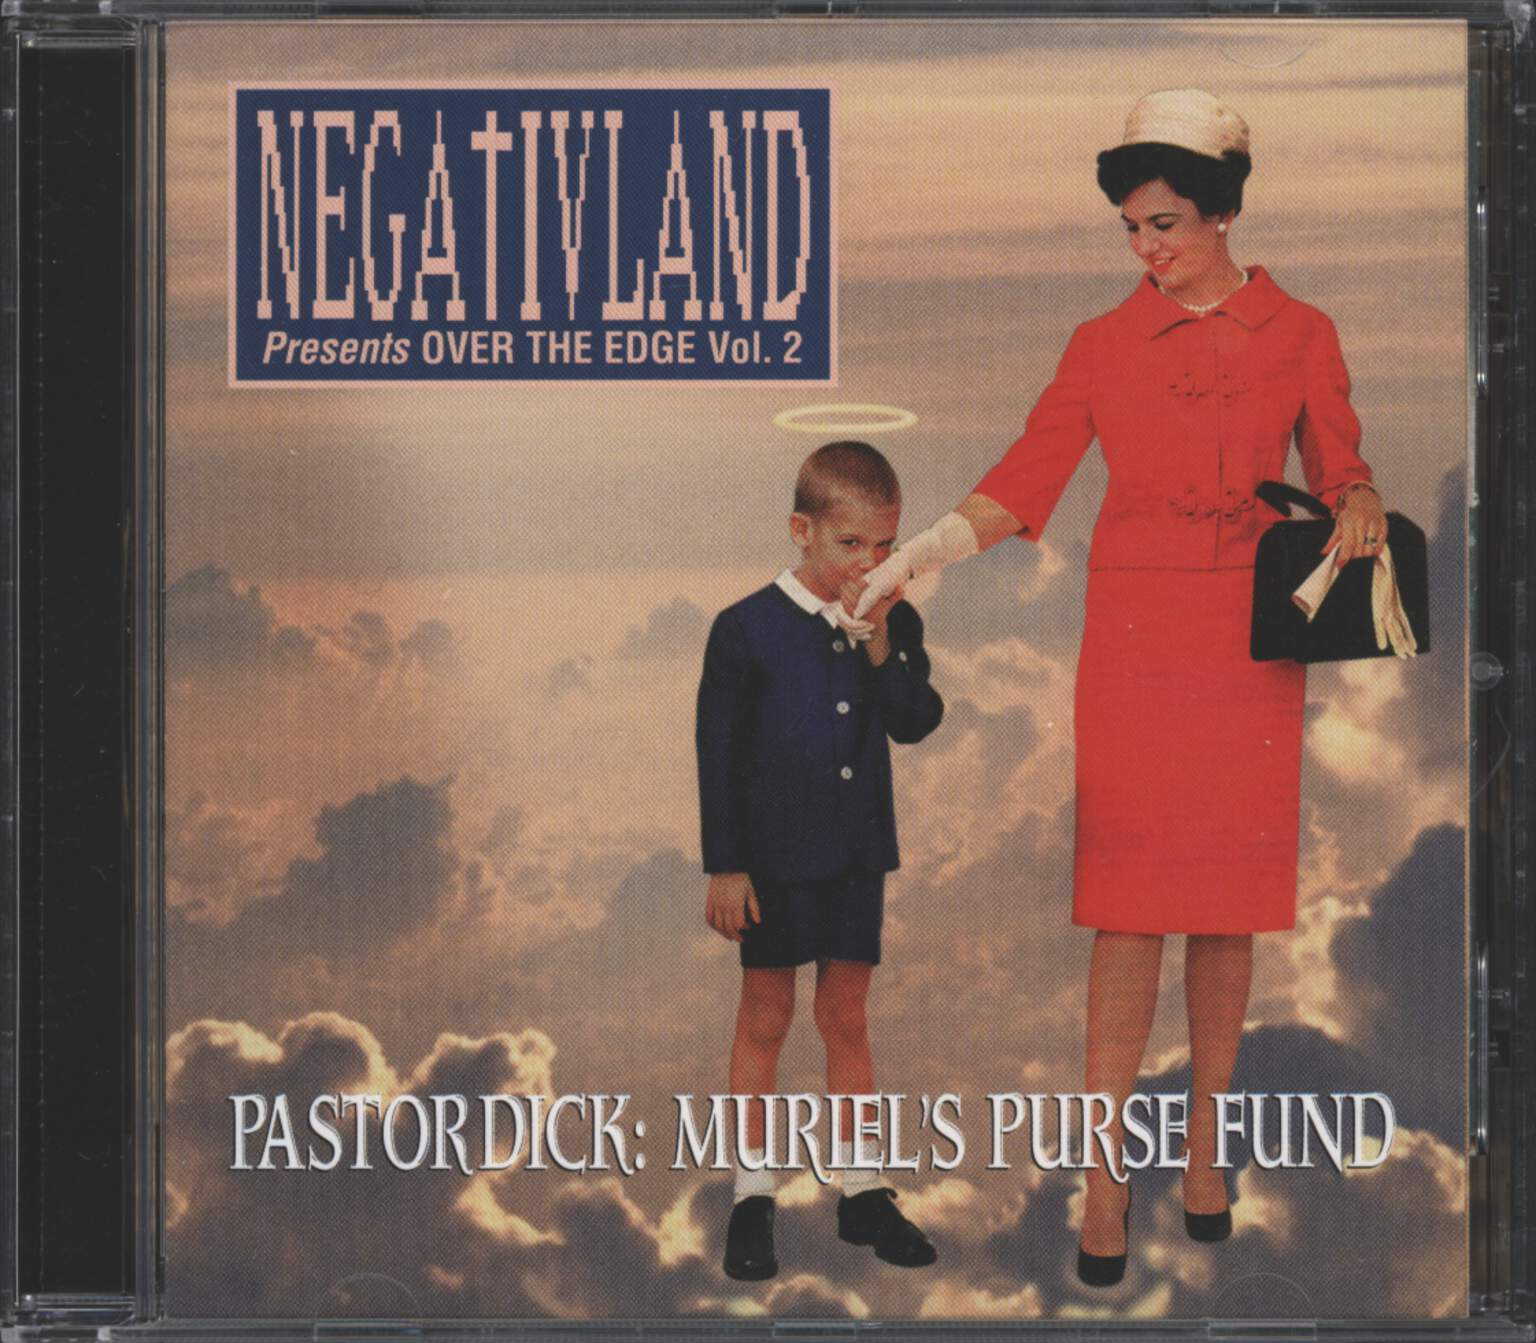 Negativland: Presents Over The Edge Vol. 2 - Pastor Dick: Muriel's Purse Fund, CD